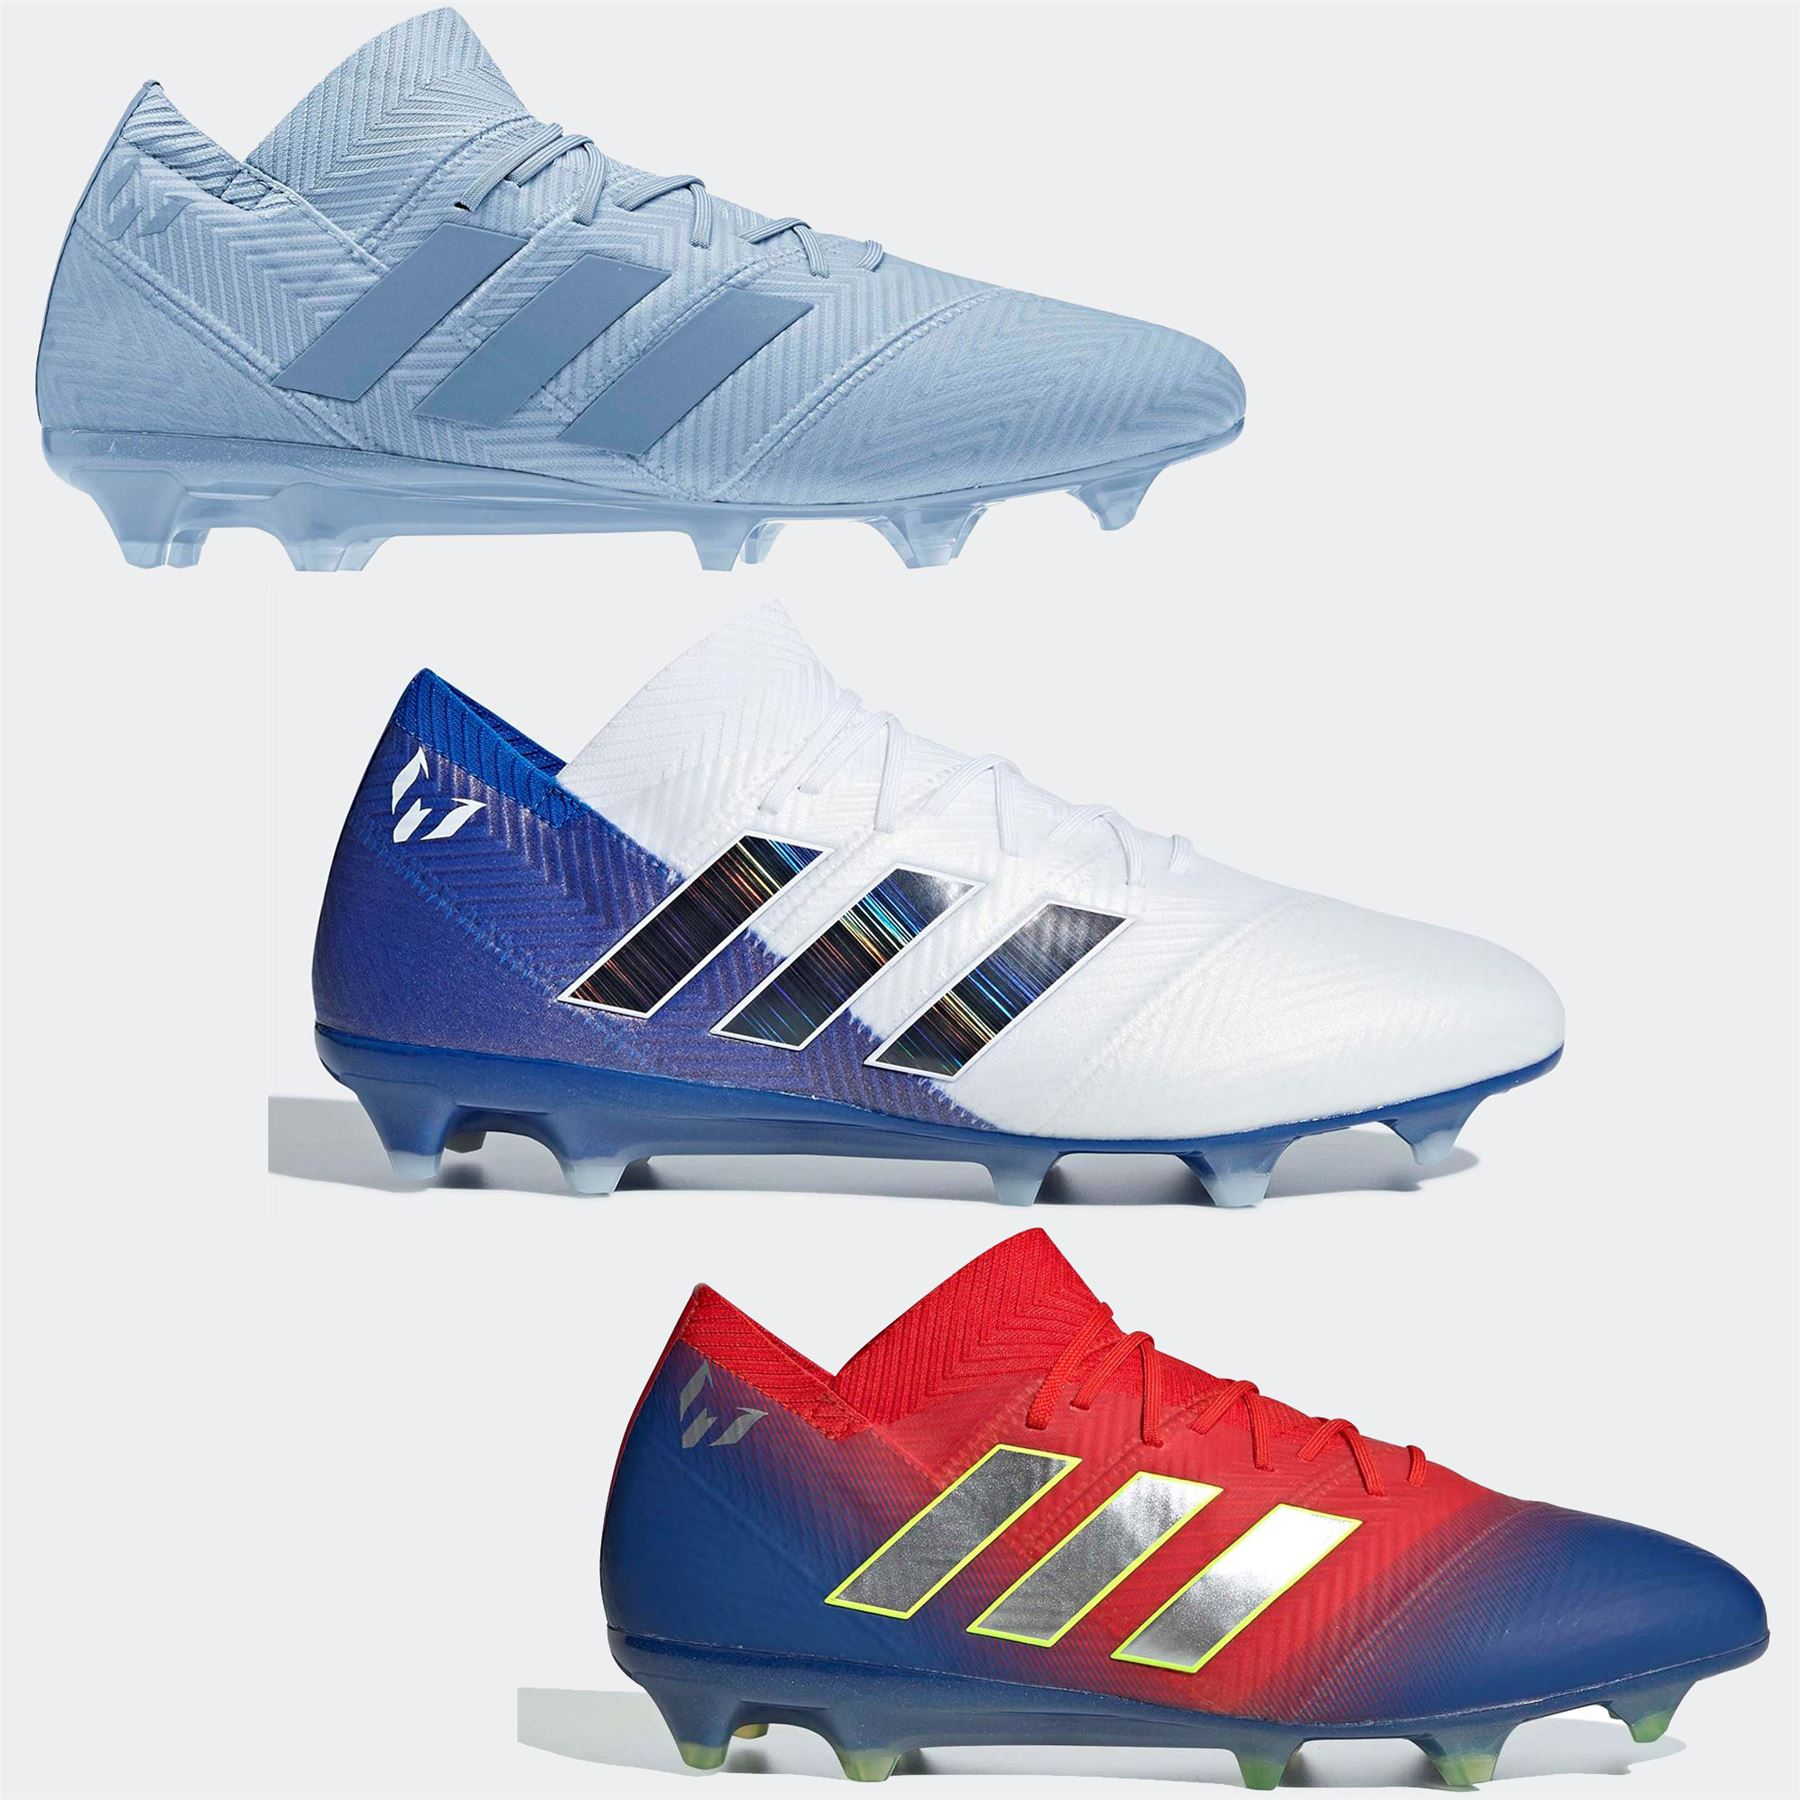 8c839994 ... adidas Nemeziz Messi 18.1 FG Firm Ground Football Boots Mens Soccer  Shoes Cleats ...